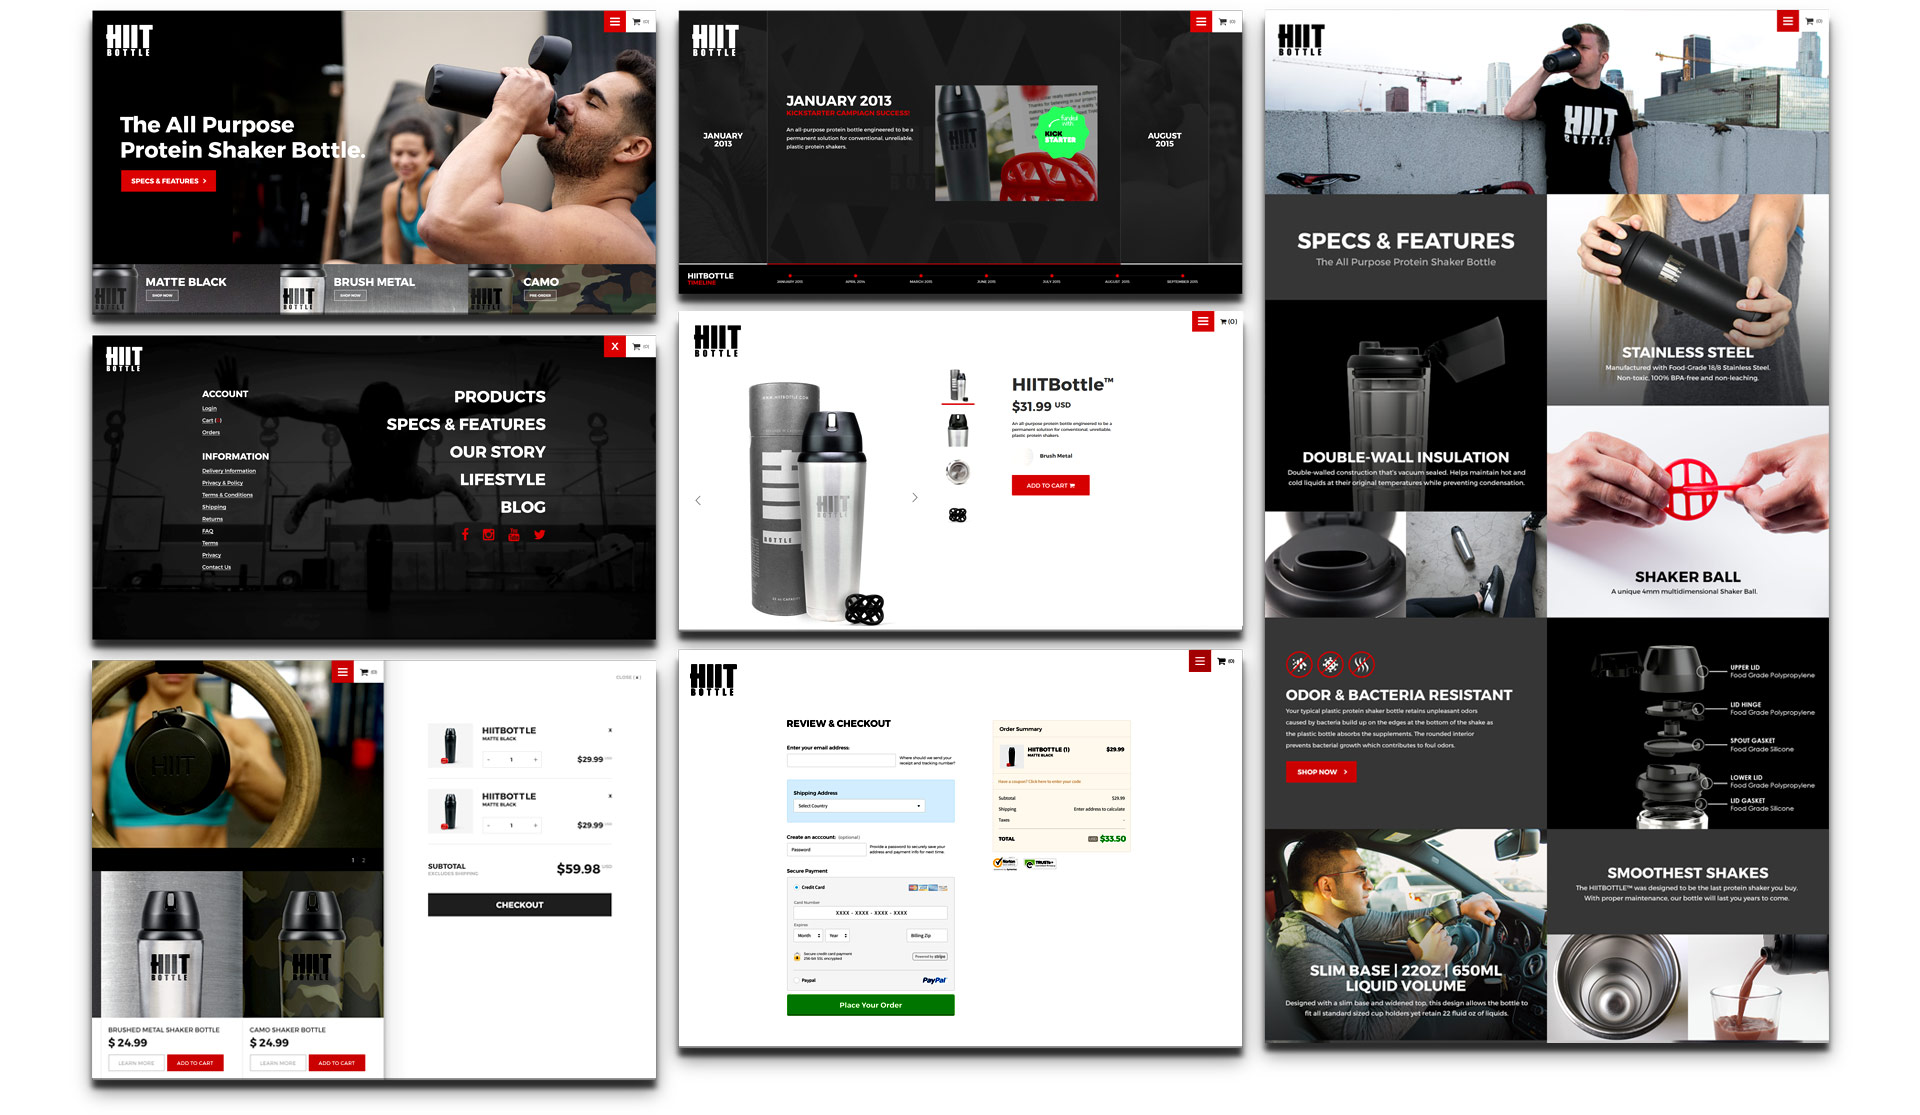 HIIT Bottle Website Pages